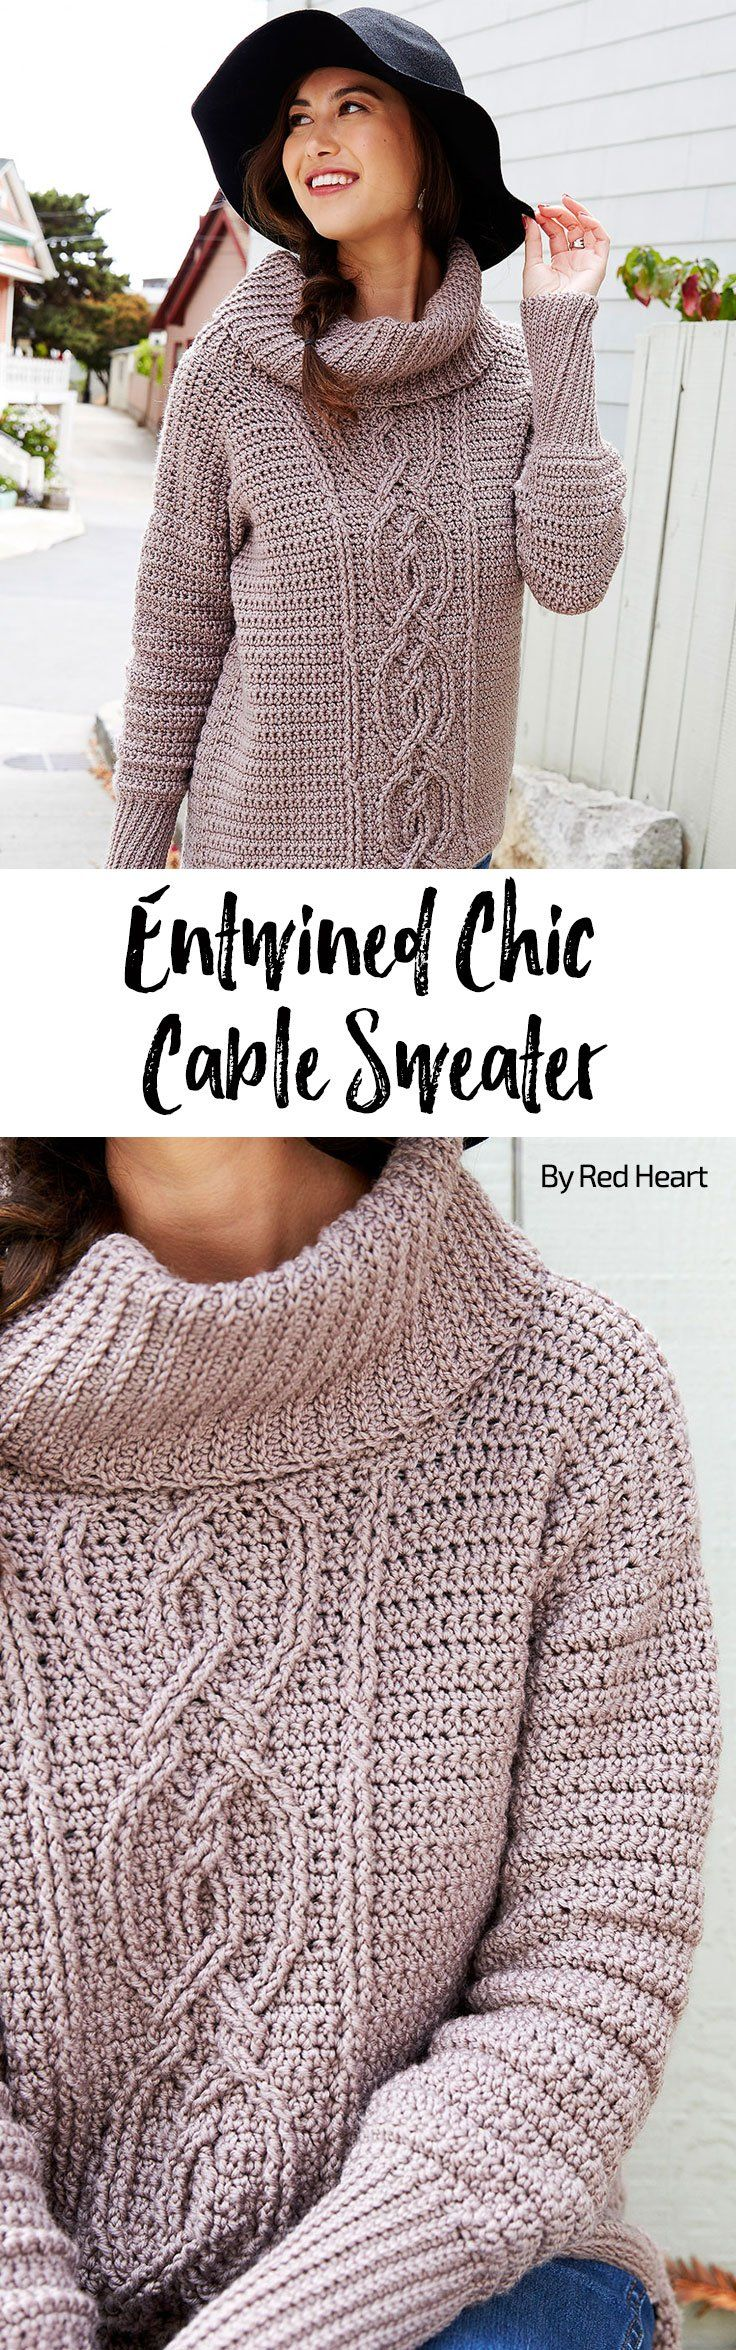 Entwined Chic Cable Sweater free crochet pattern in Chic Sheep ...